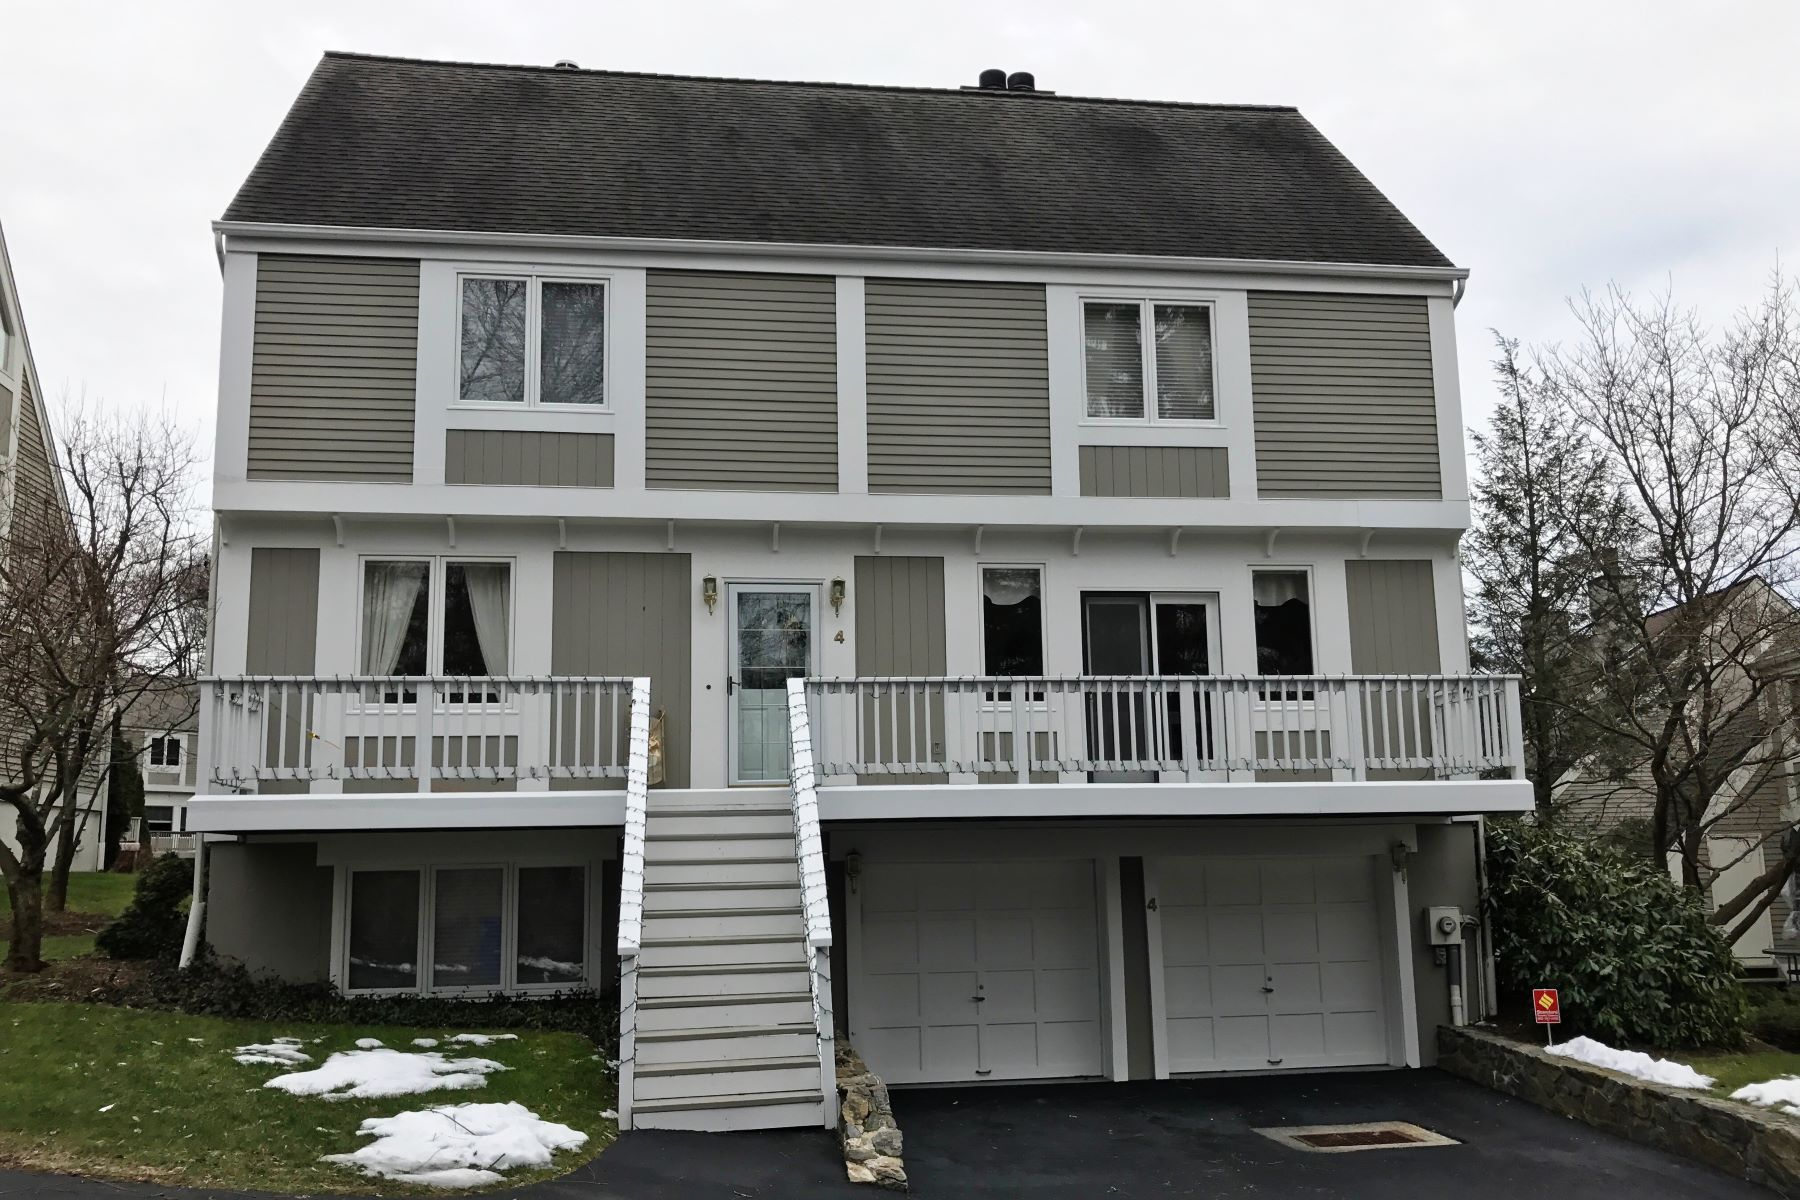 por un Venta en Teal Brook Townhouse 212 Richards Avenue 4, Norwalk, Connecticut, 06850 Estados Unidos